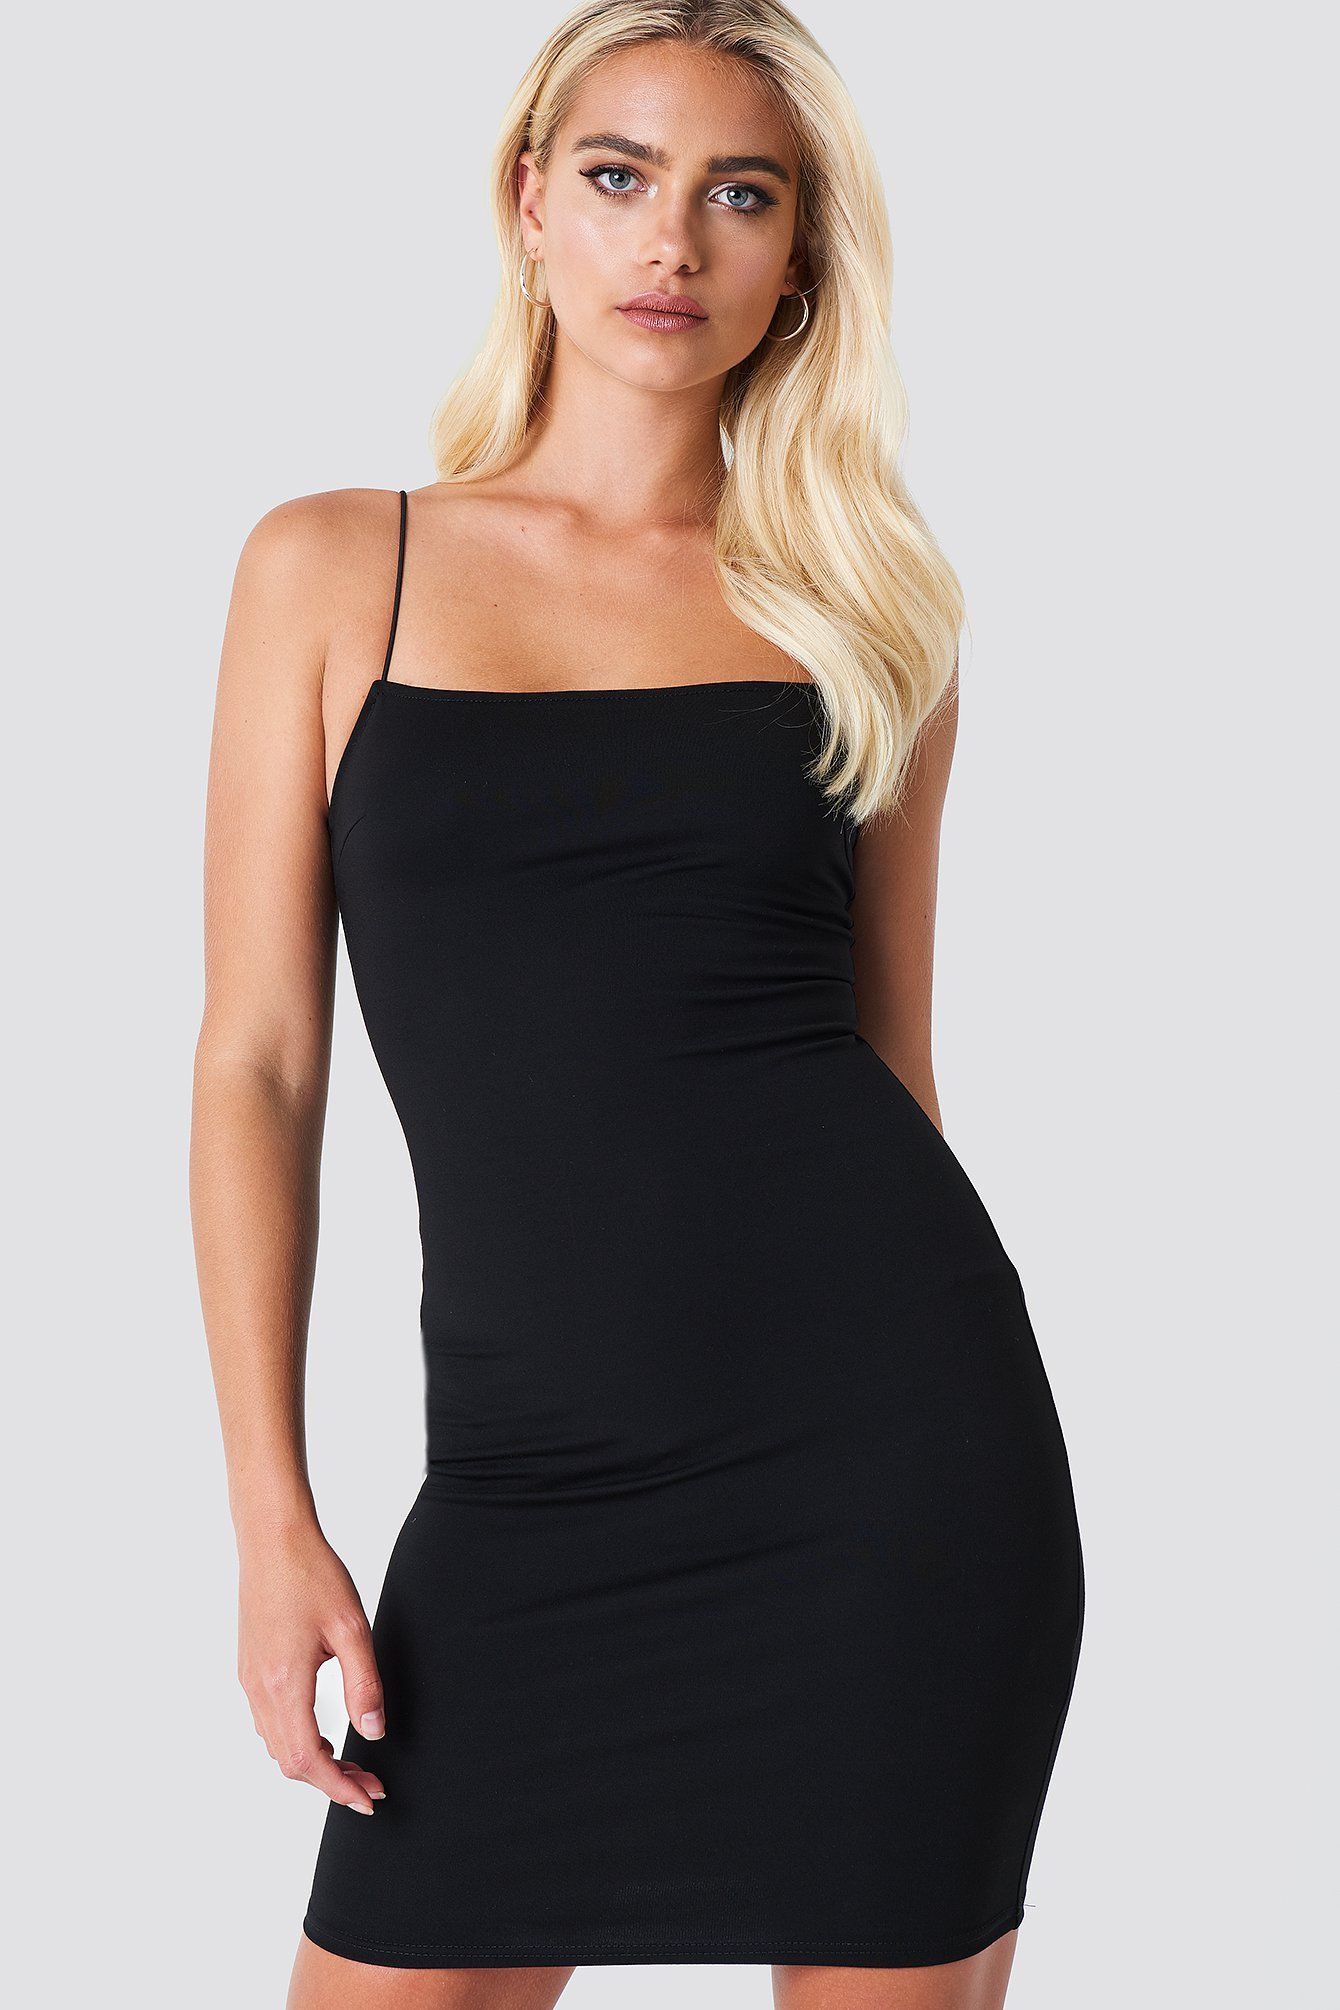 17f28a34d1 The Spaghetti Strap Dress by NA-KD features a tight fitted dress ...